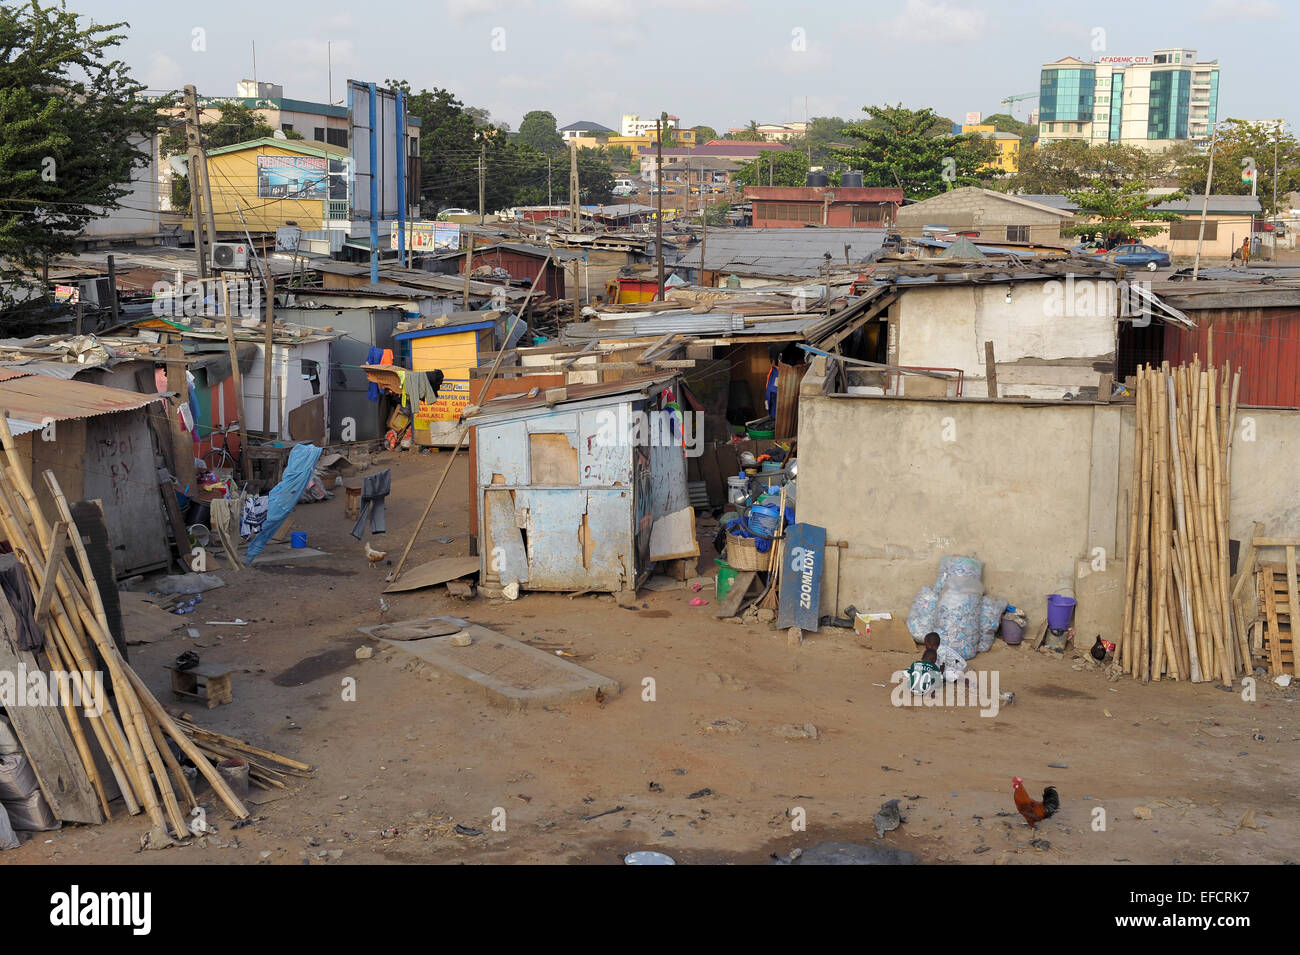 A shantytown located near downtown Accra, Ghana, West Africa. - Stock Image